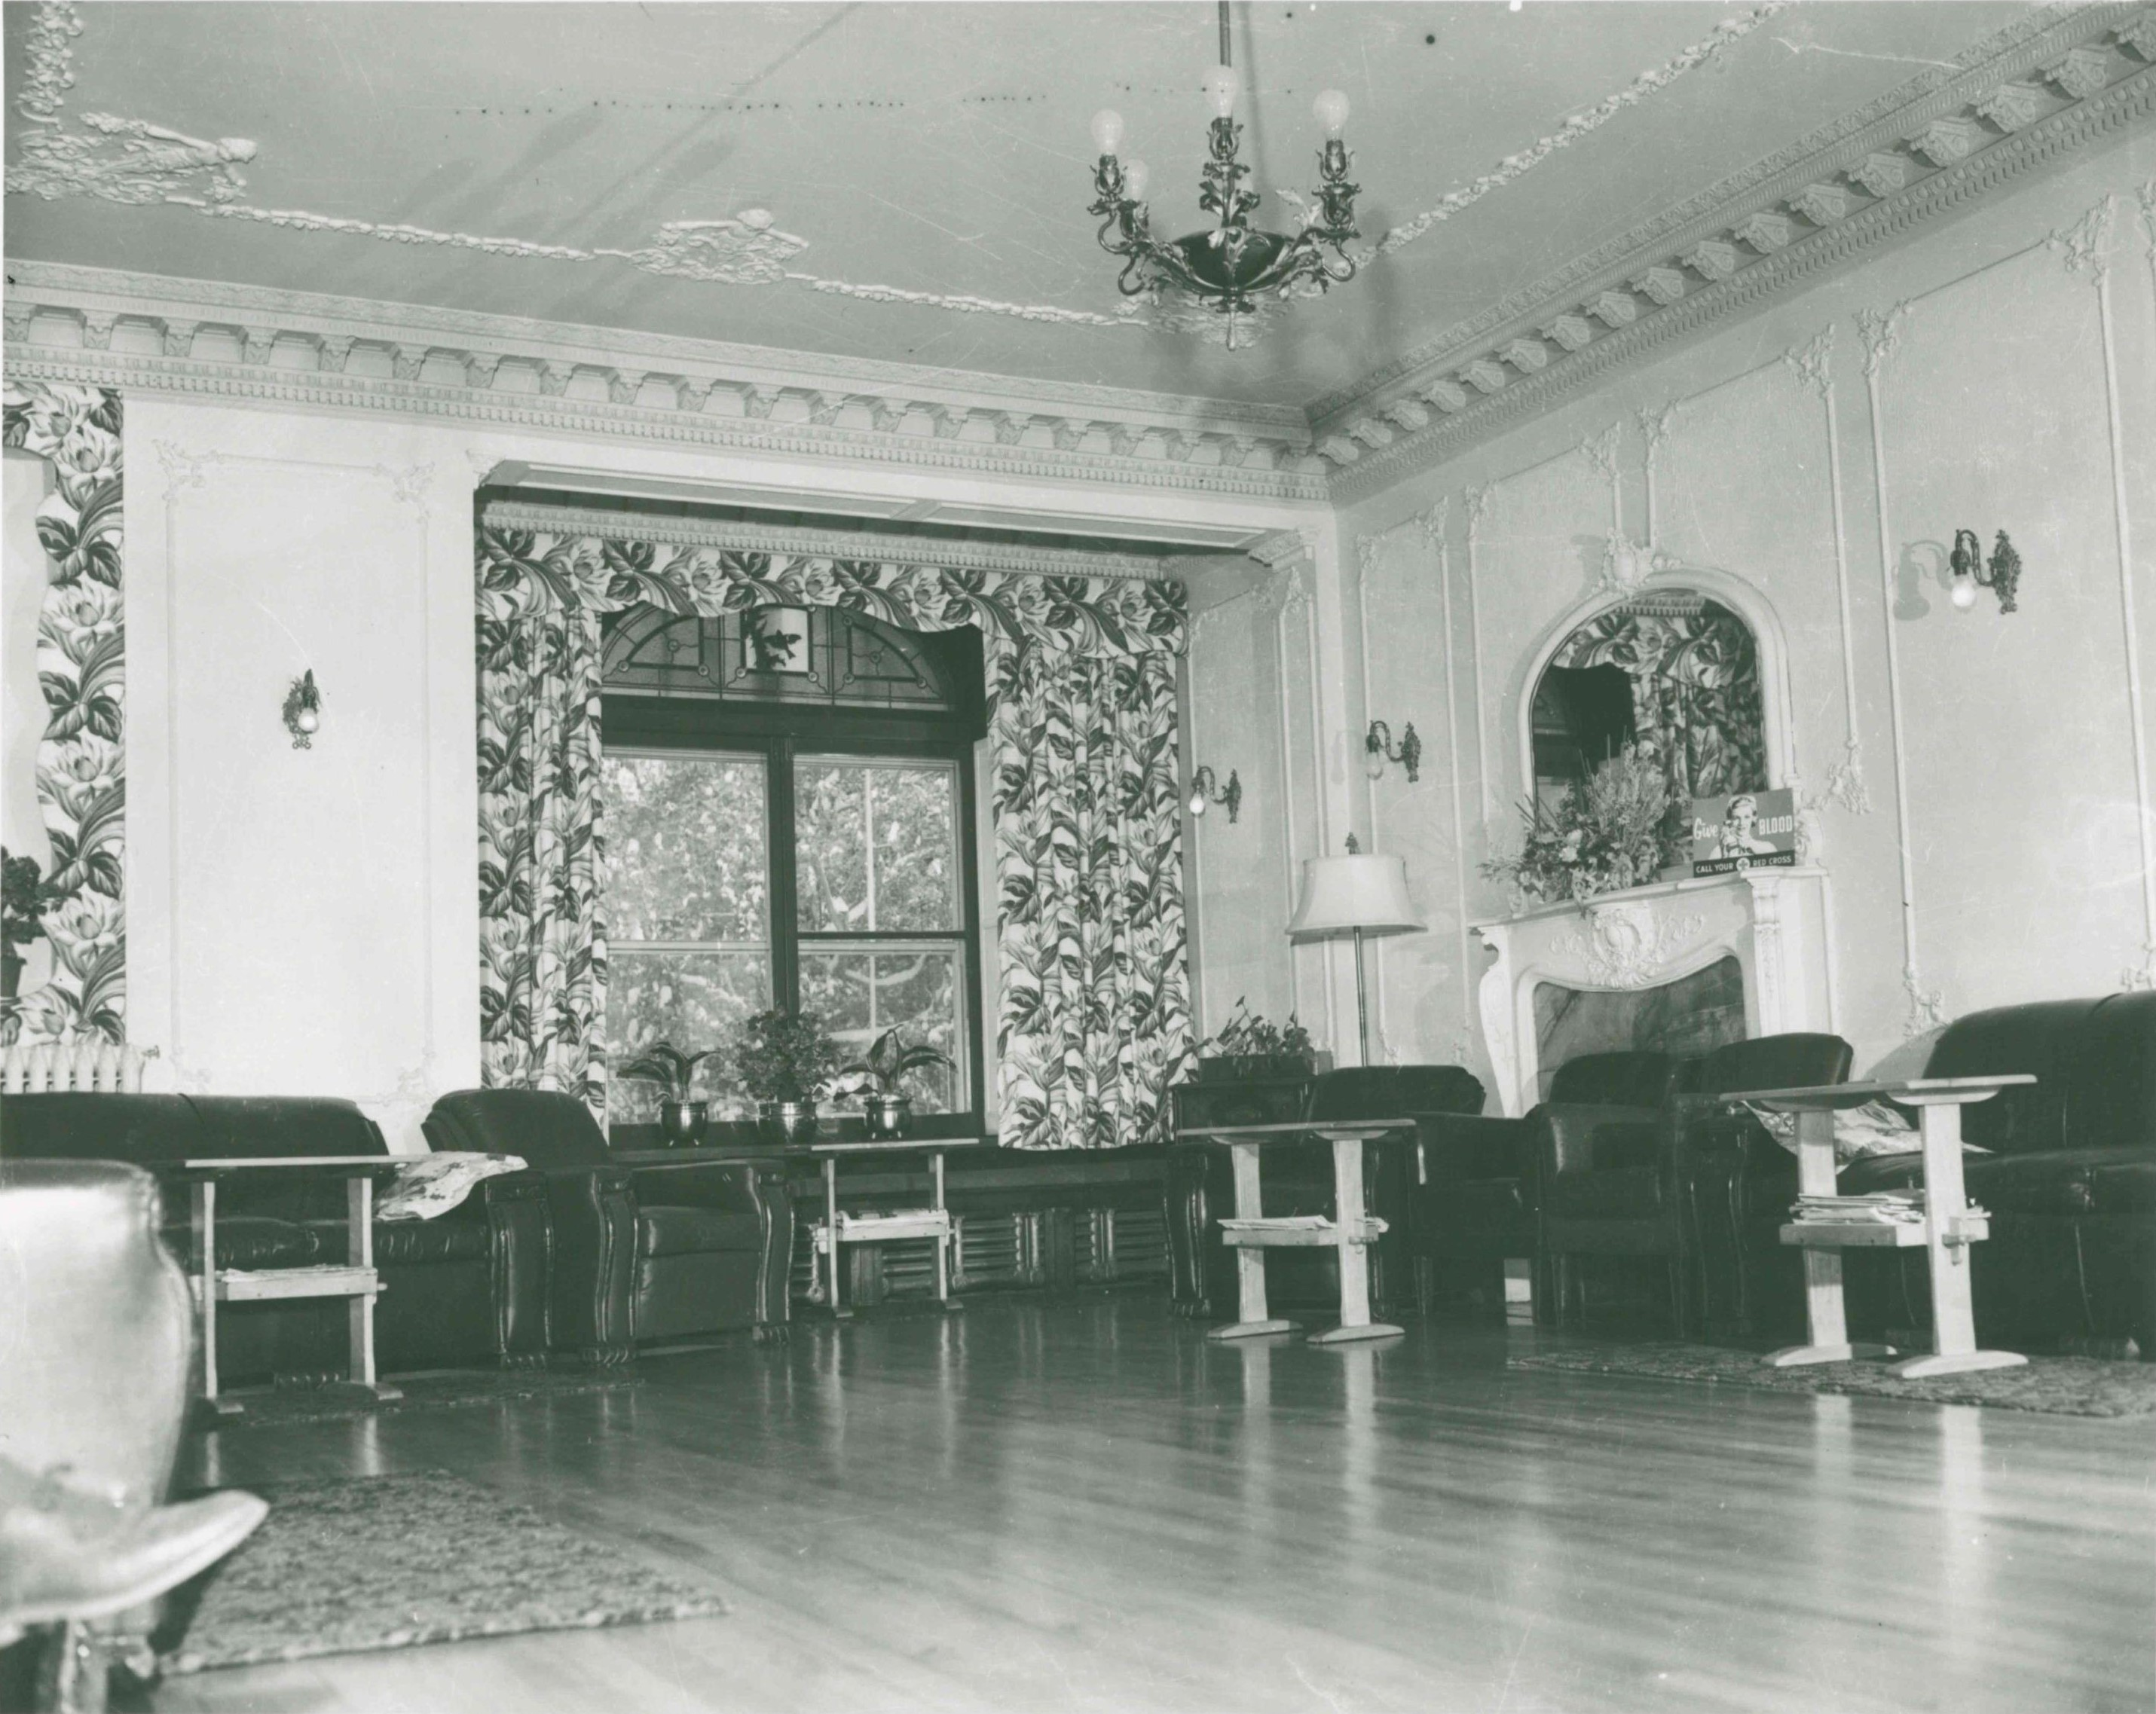 Image 4, Drawing Room during Red Cross Occupation, Unknown Date